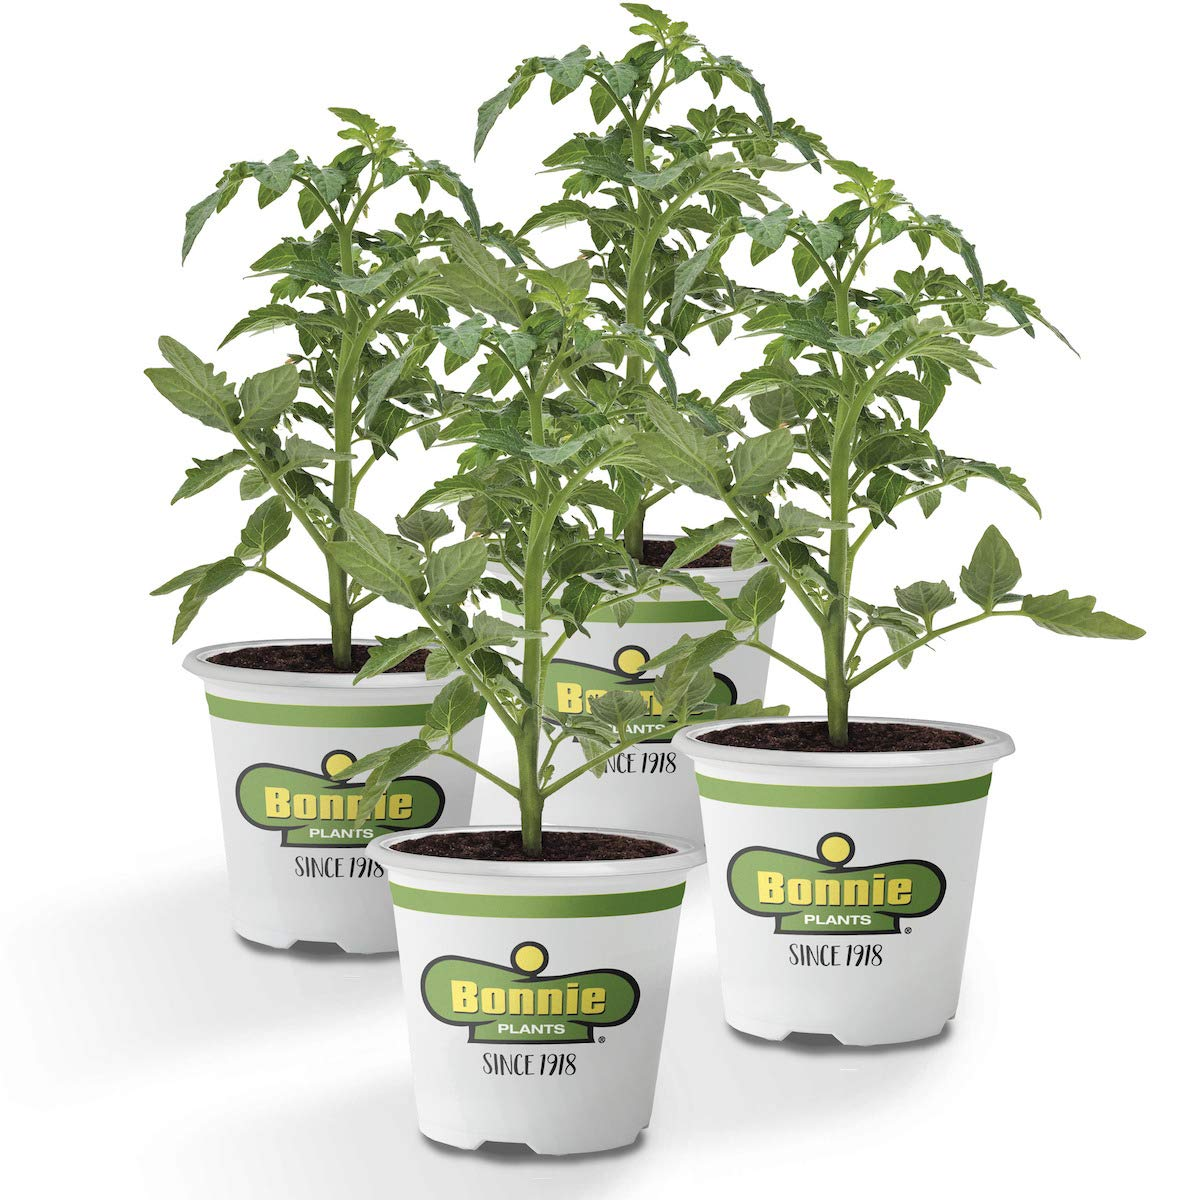 Bonnie Plants Husky Cherry Red Tomato Live Vegetable Plants - 4 Pack | Non-GMO | Bite Sized | Disease Resistant